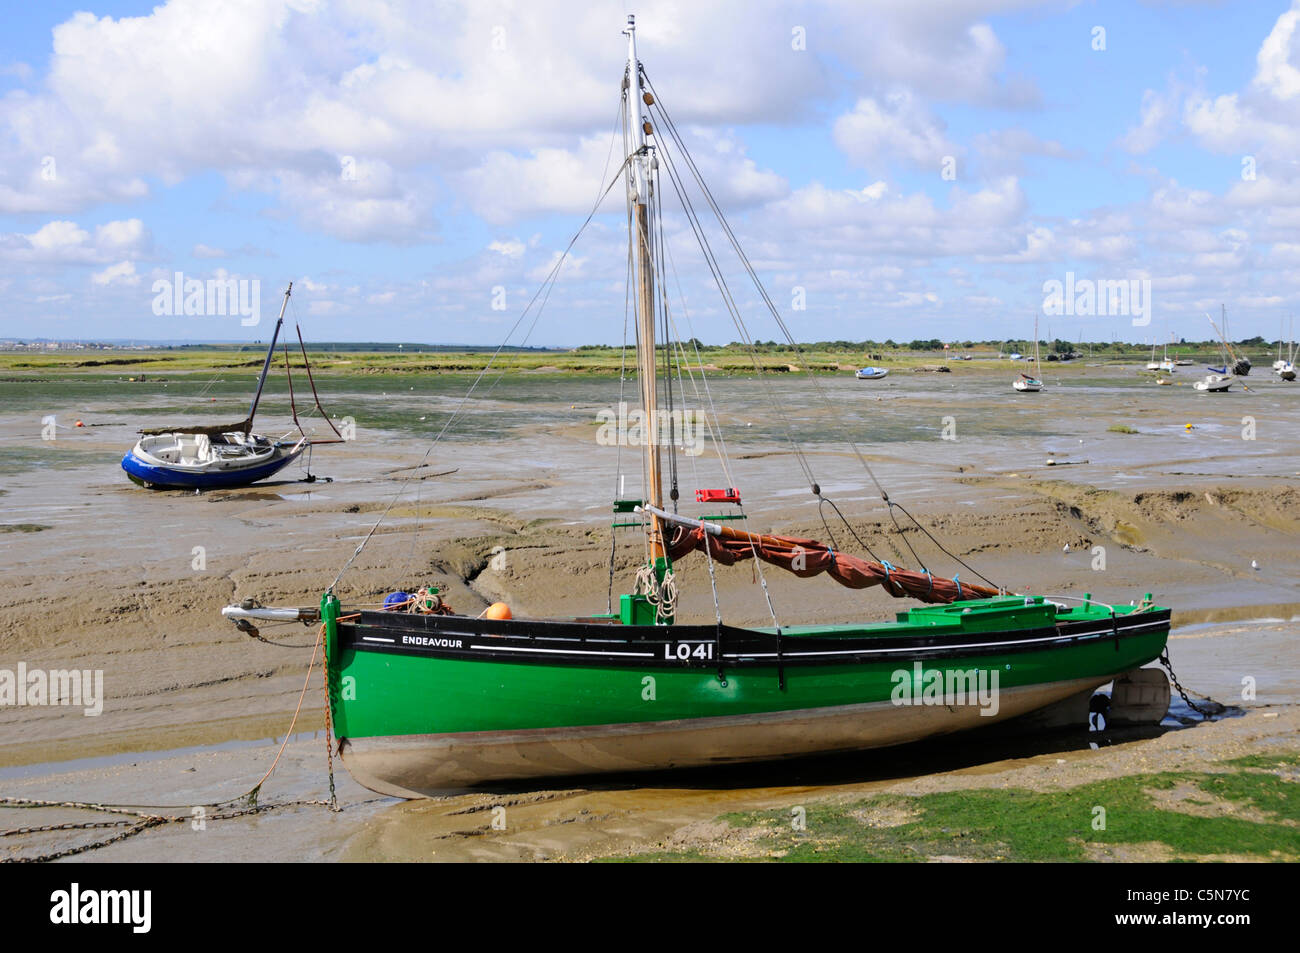 Cockle boat  Endeavour LO41 a Dunkirk 'Little Ships' at Leigh on Sea Essex England UK (see additional information - Stock Image